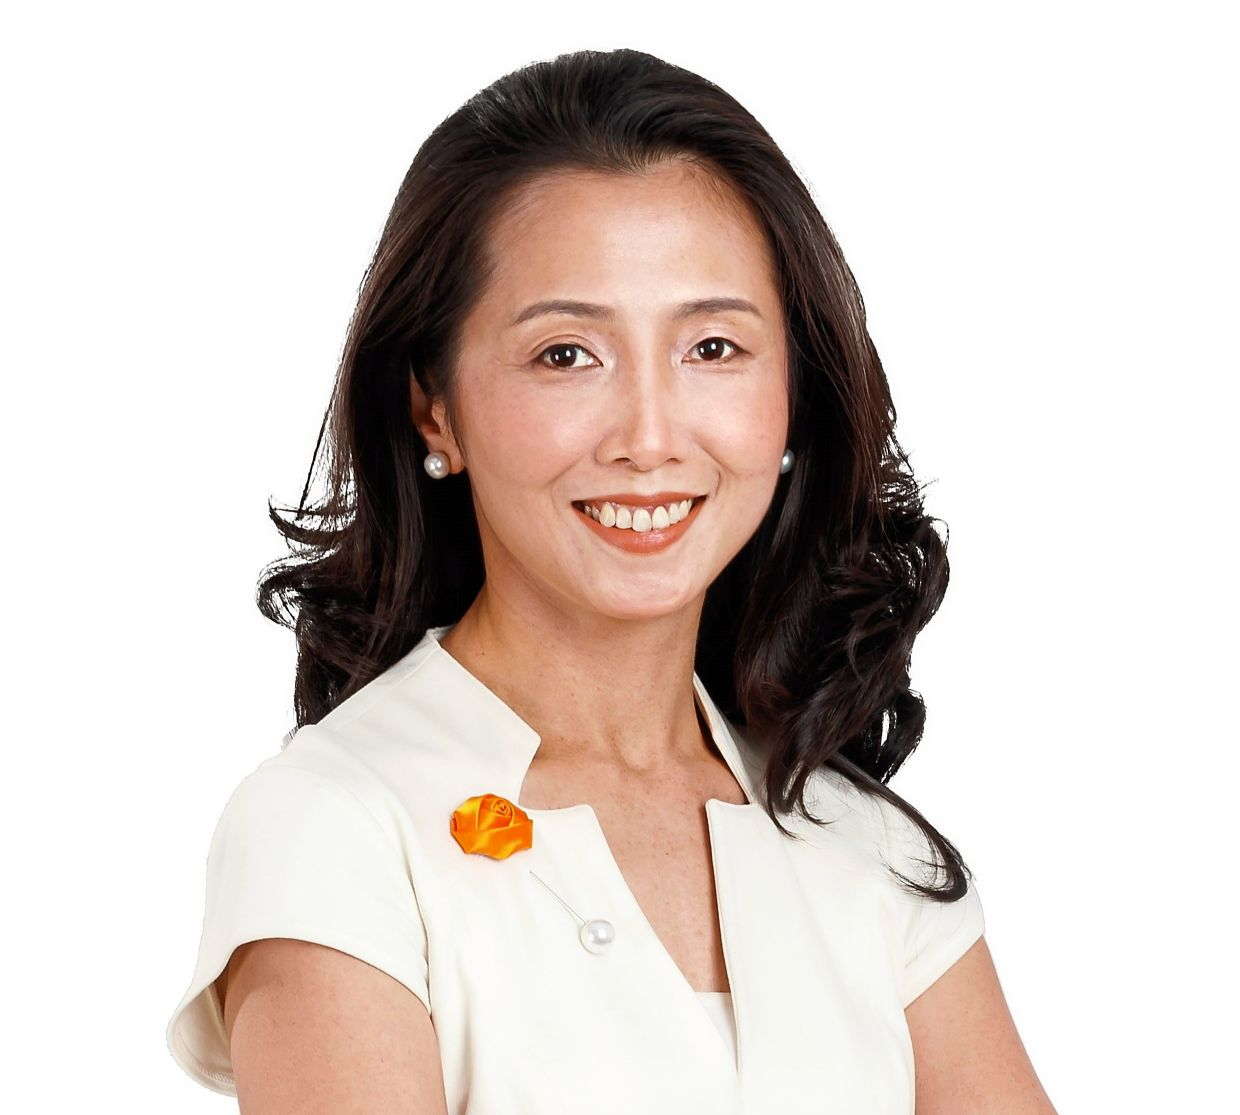 Dr Lim: Couples seeking fertility treatments must prepare for the emotional and financial costs.